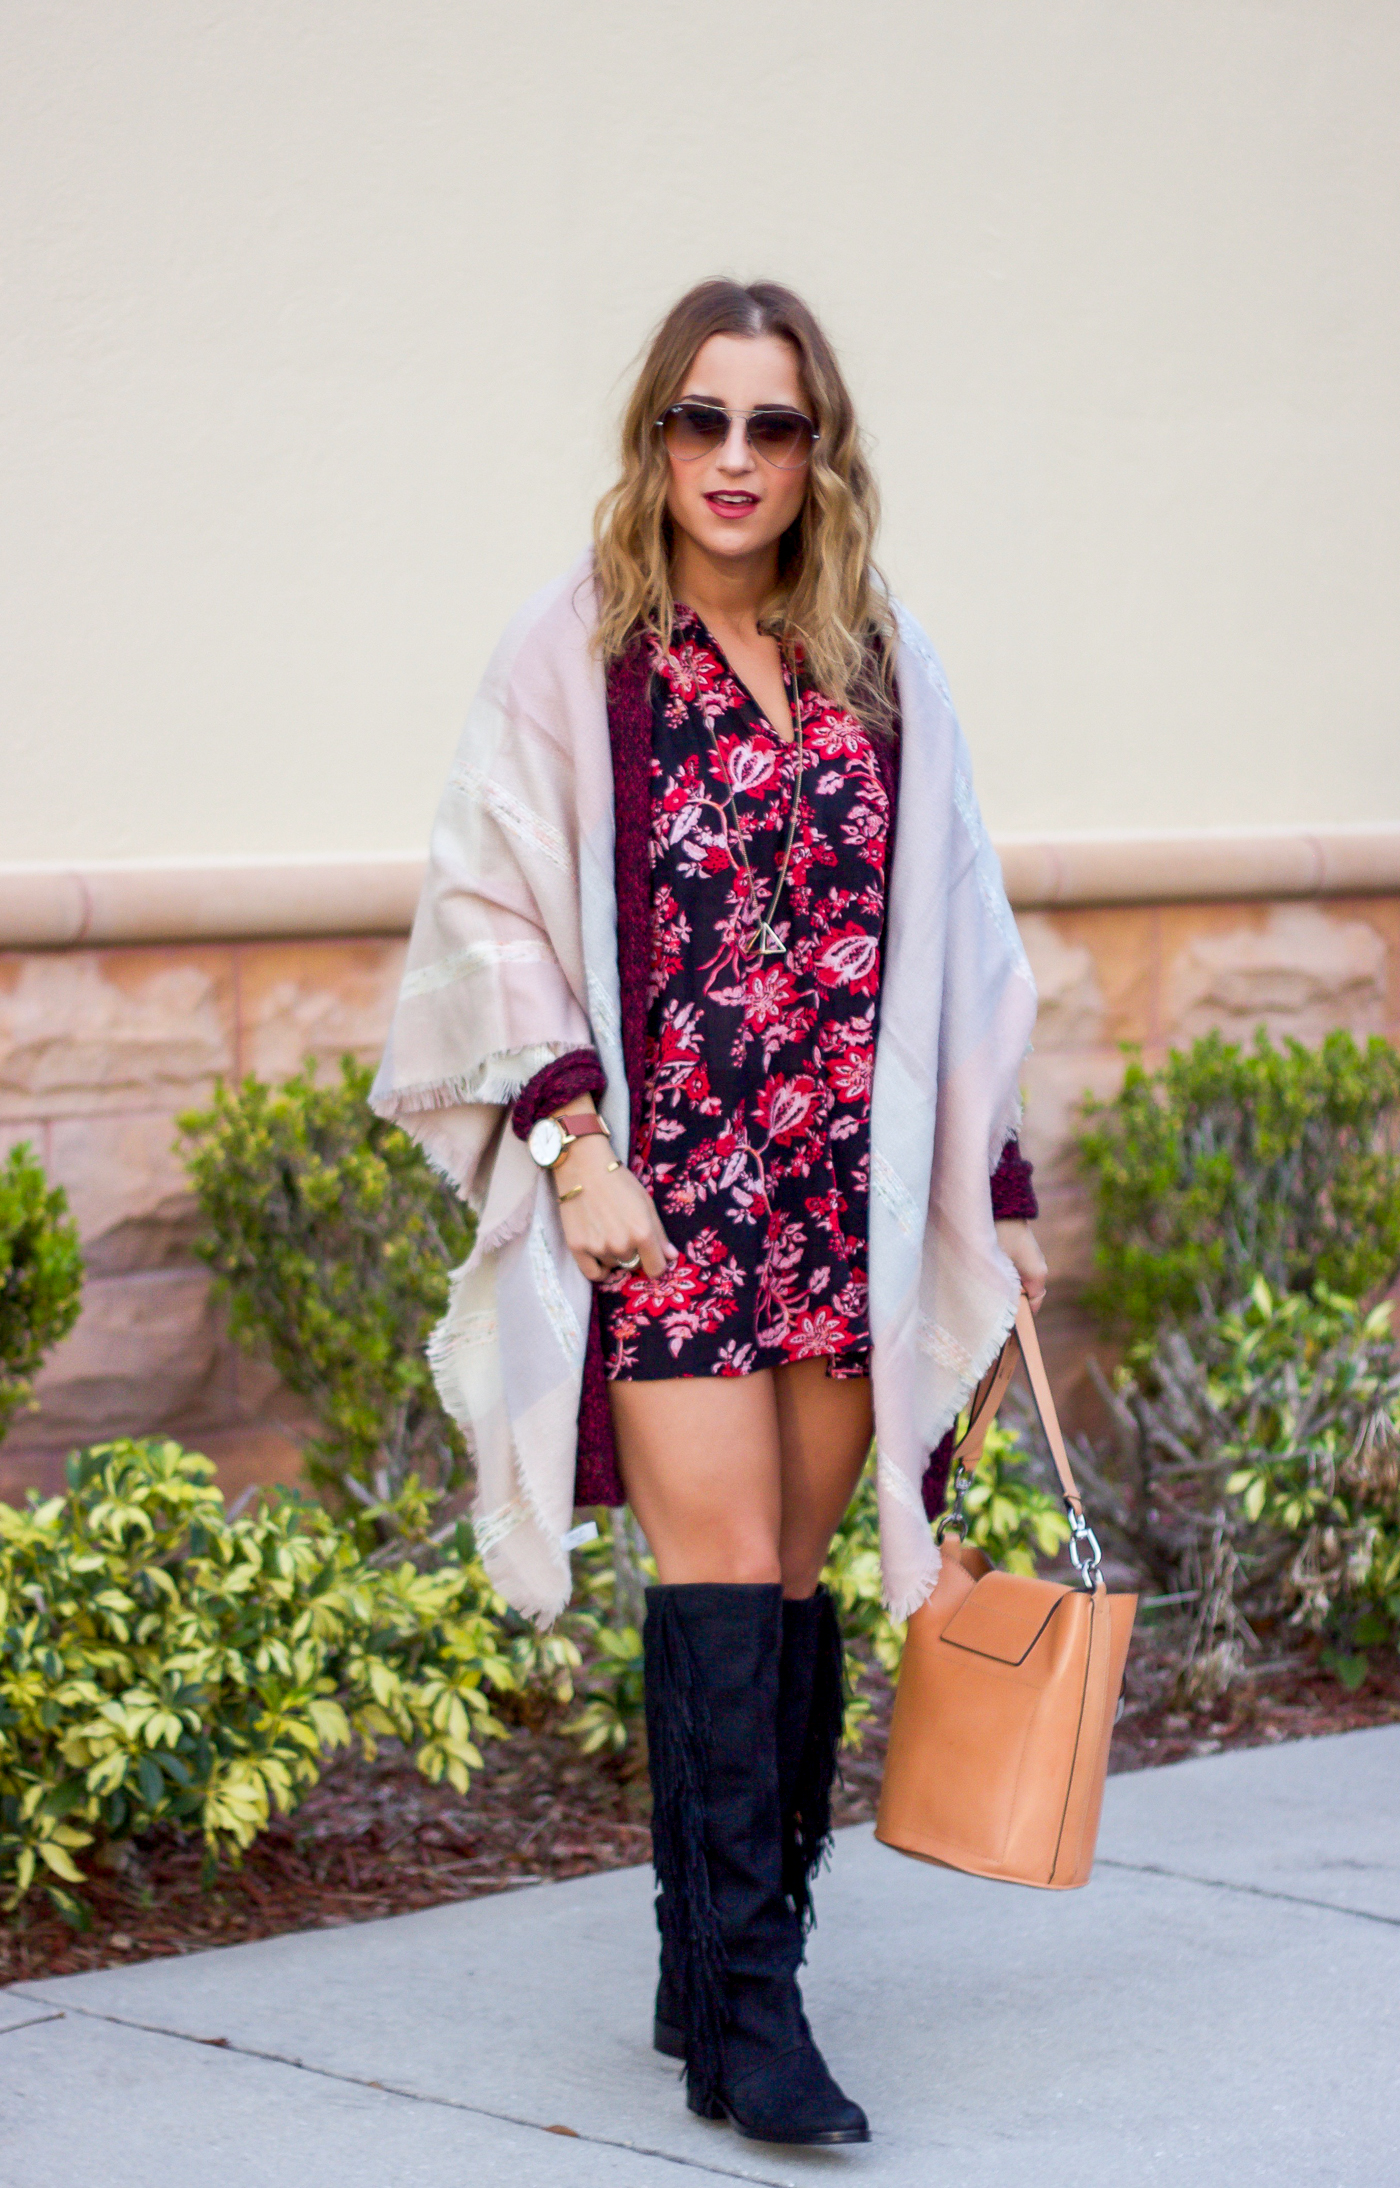 Canadian fashion and lifestyle blogger, wearing a dark floral dress with an oversized blanket scarf and fringe boots